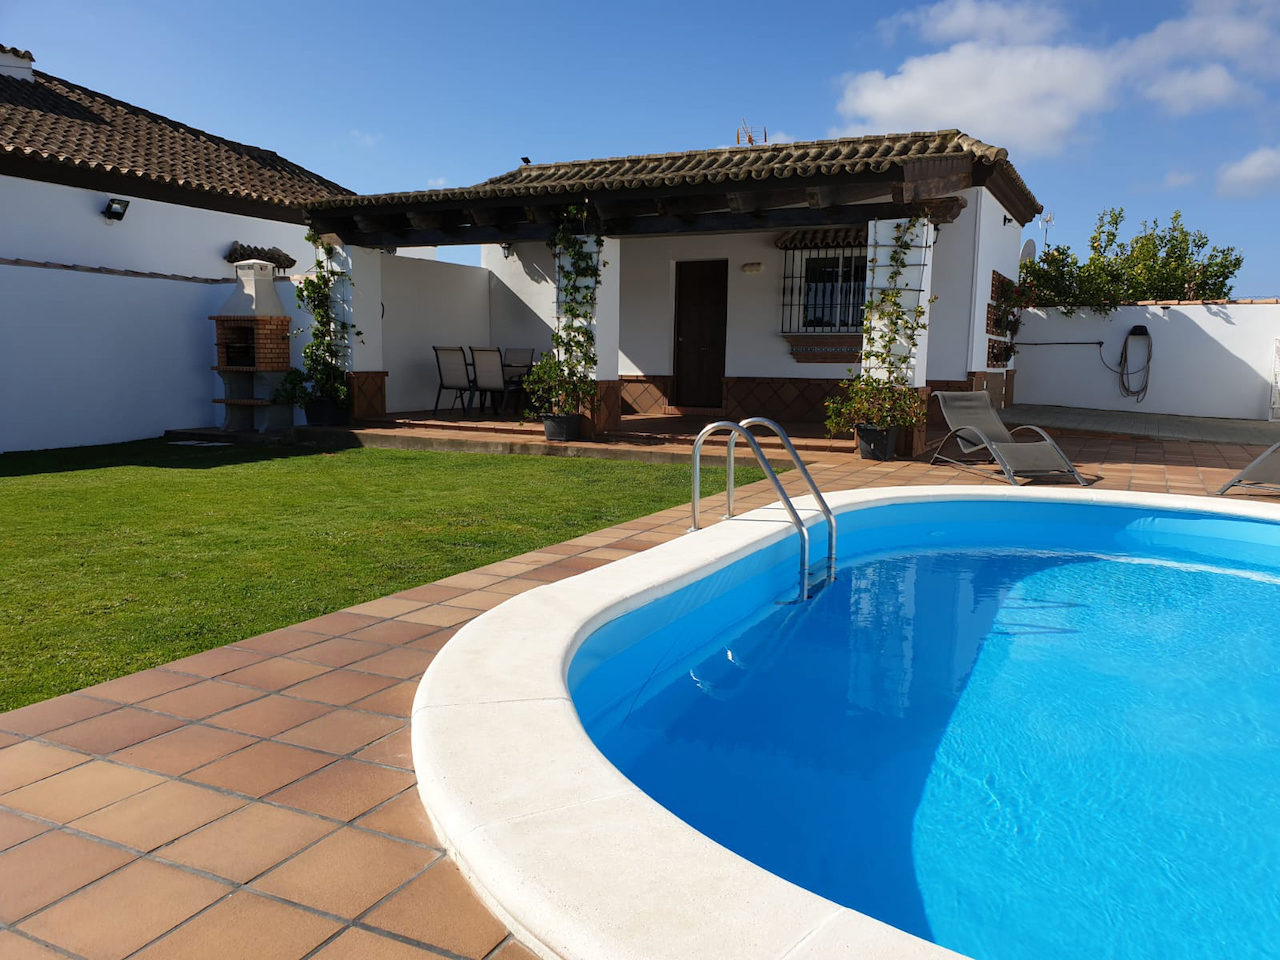 Jacaranda, Beautiful and comfortable apartment in Chiclana de la Frontera, Andalusia, Spain  with private pool for 4 persons.....